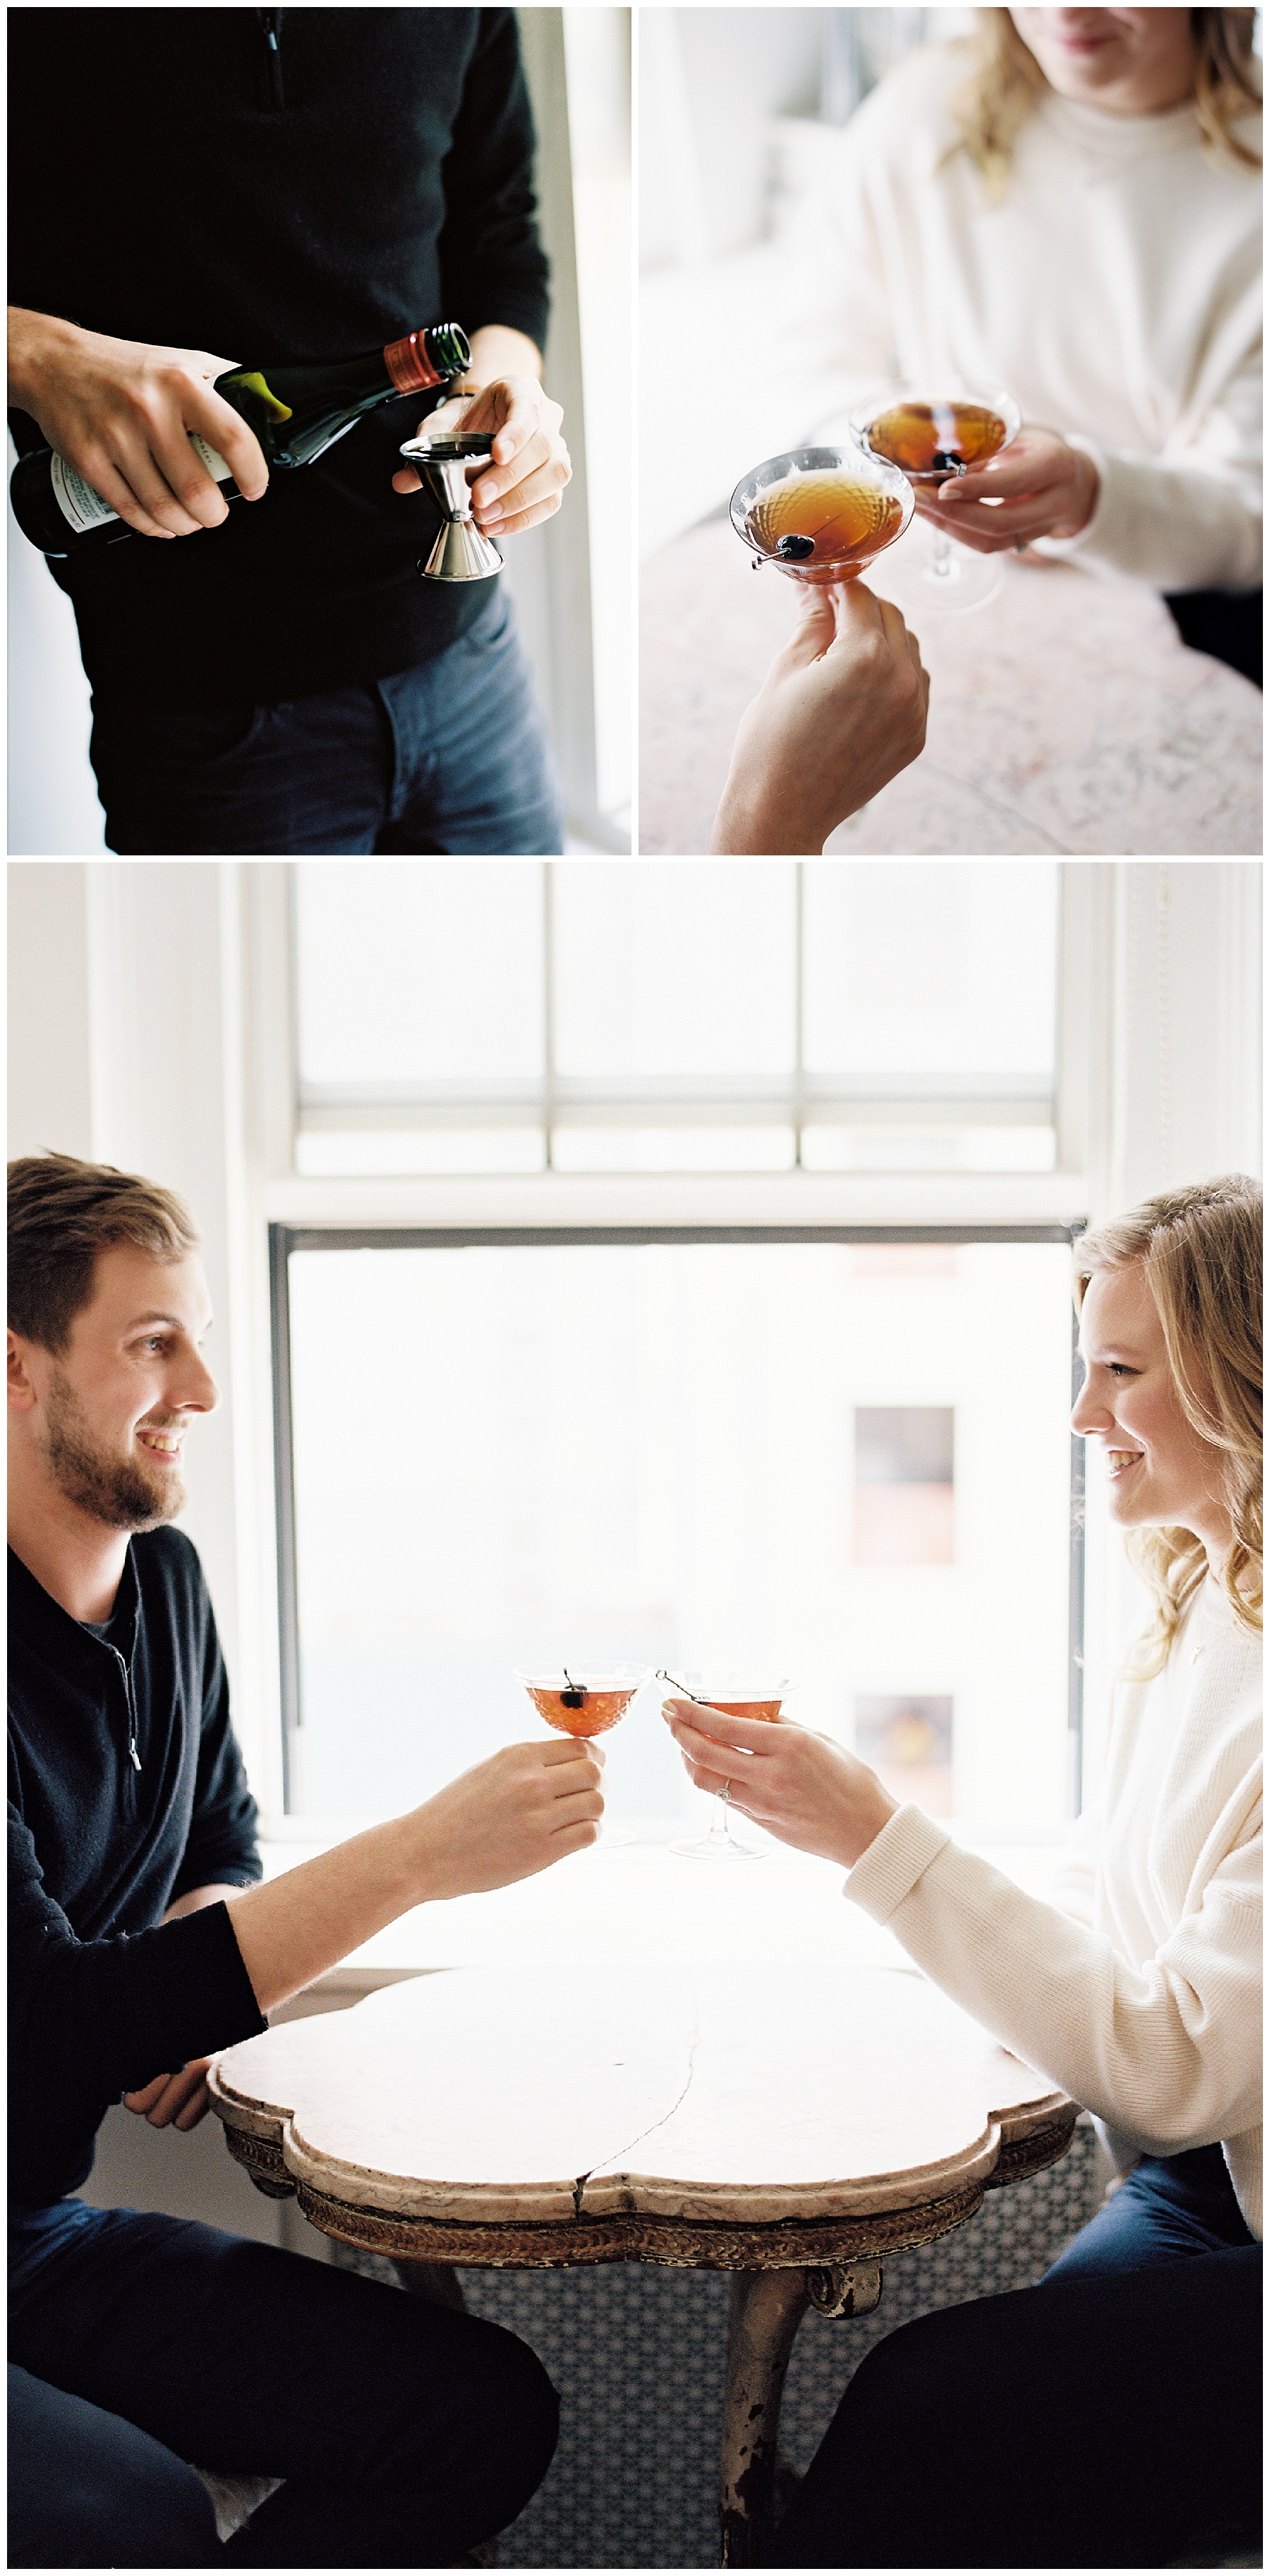 2018-02-21_0001 She Said Yes: Chloe Schultz Blog She Said Yes    invision_events, birmingham_al, auburn_al, alabama, atlanta_ga, atl, georgia, wedding_planner, wedding_designer, weddings, photography, wedding_planning